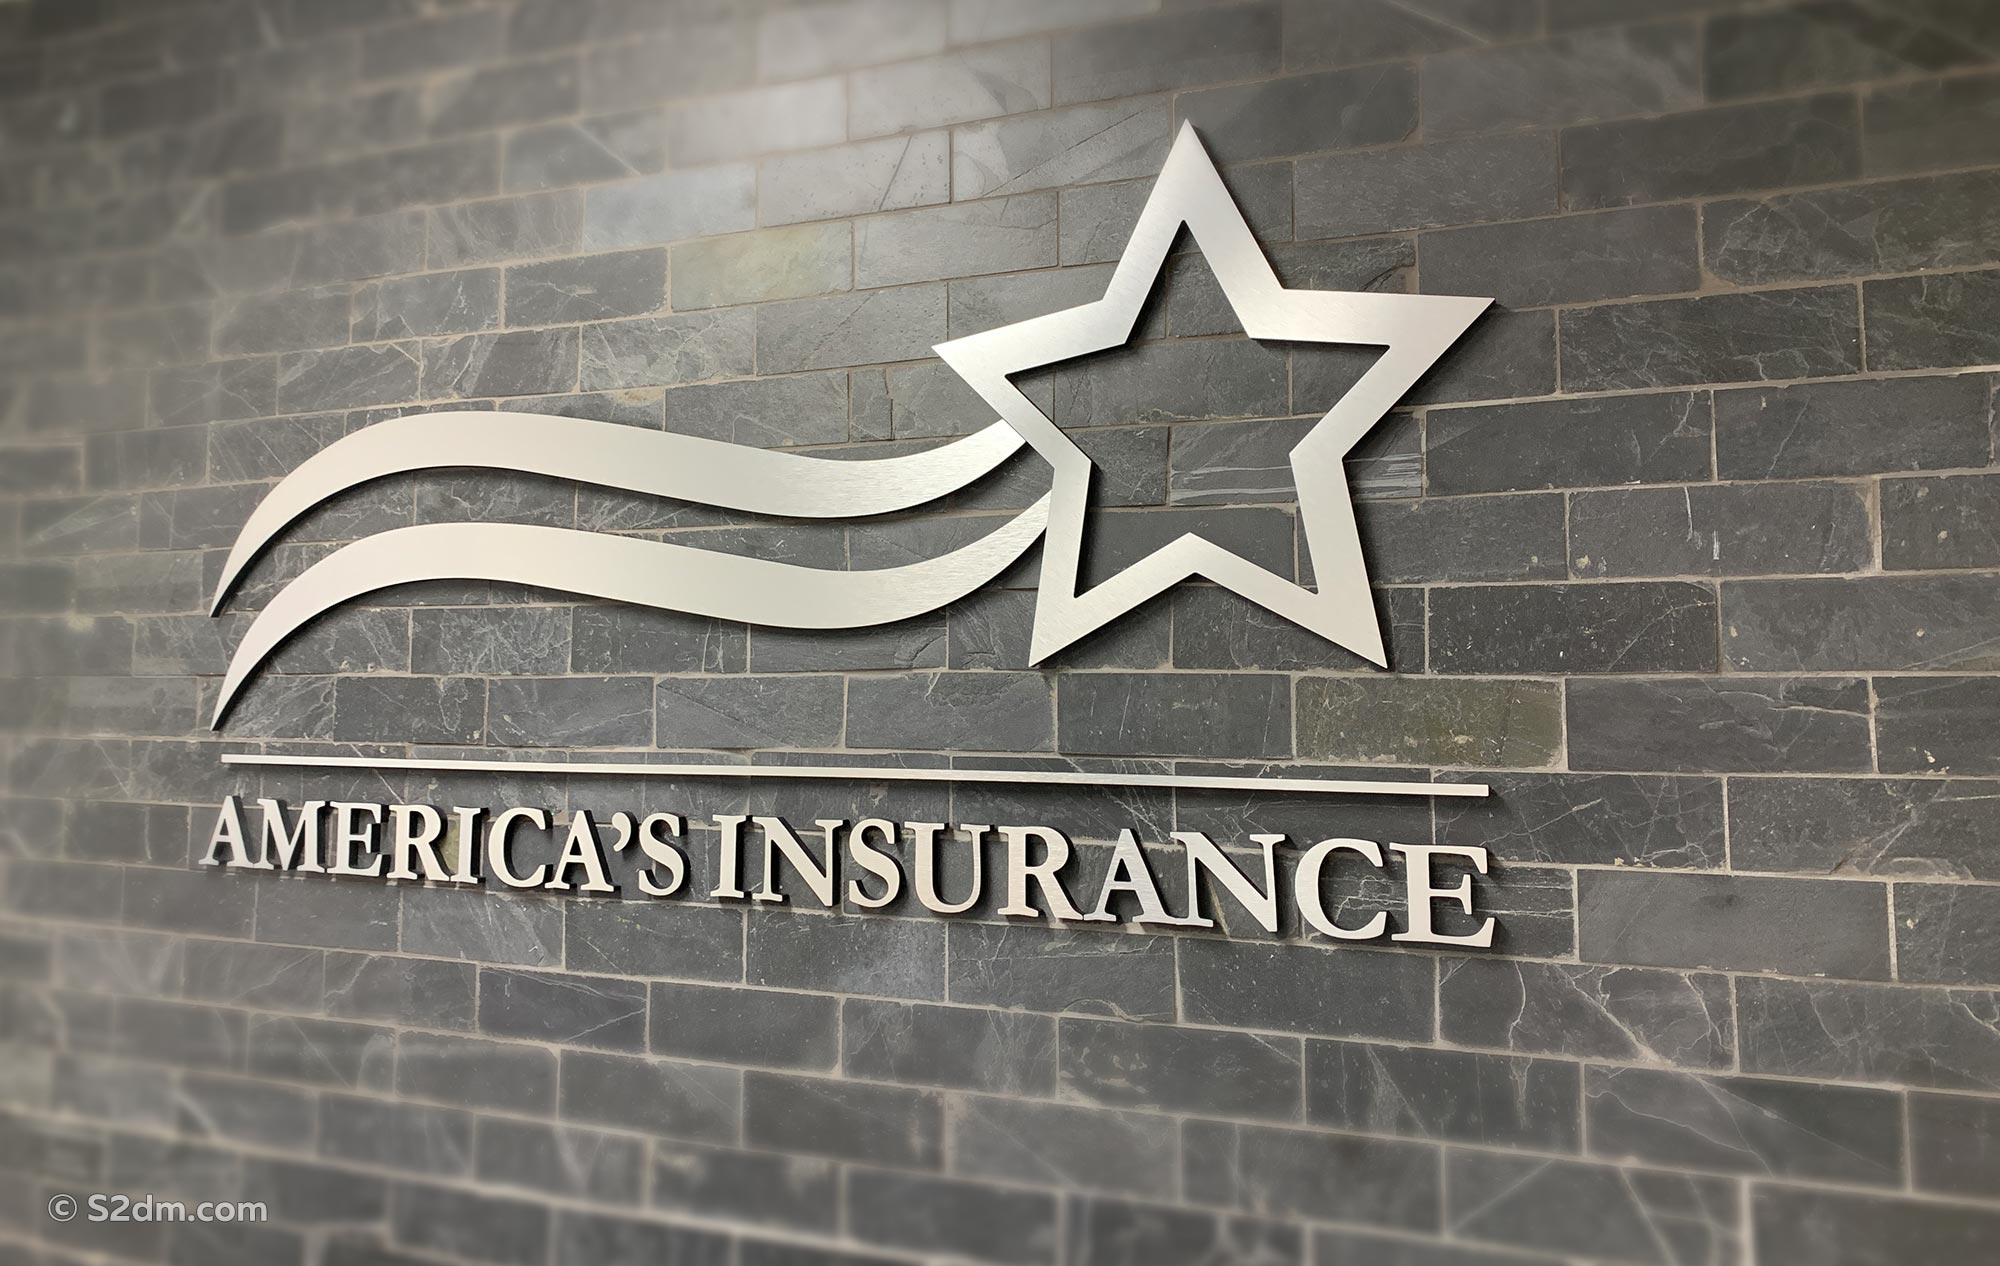 America's Insurance wall sign